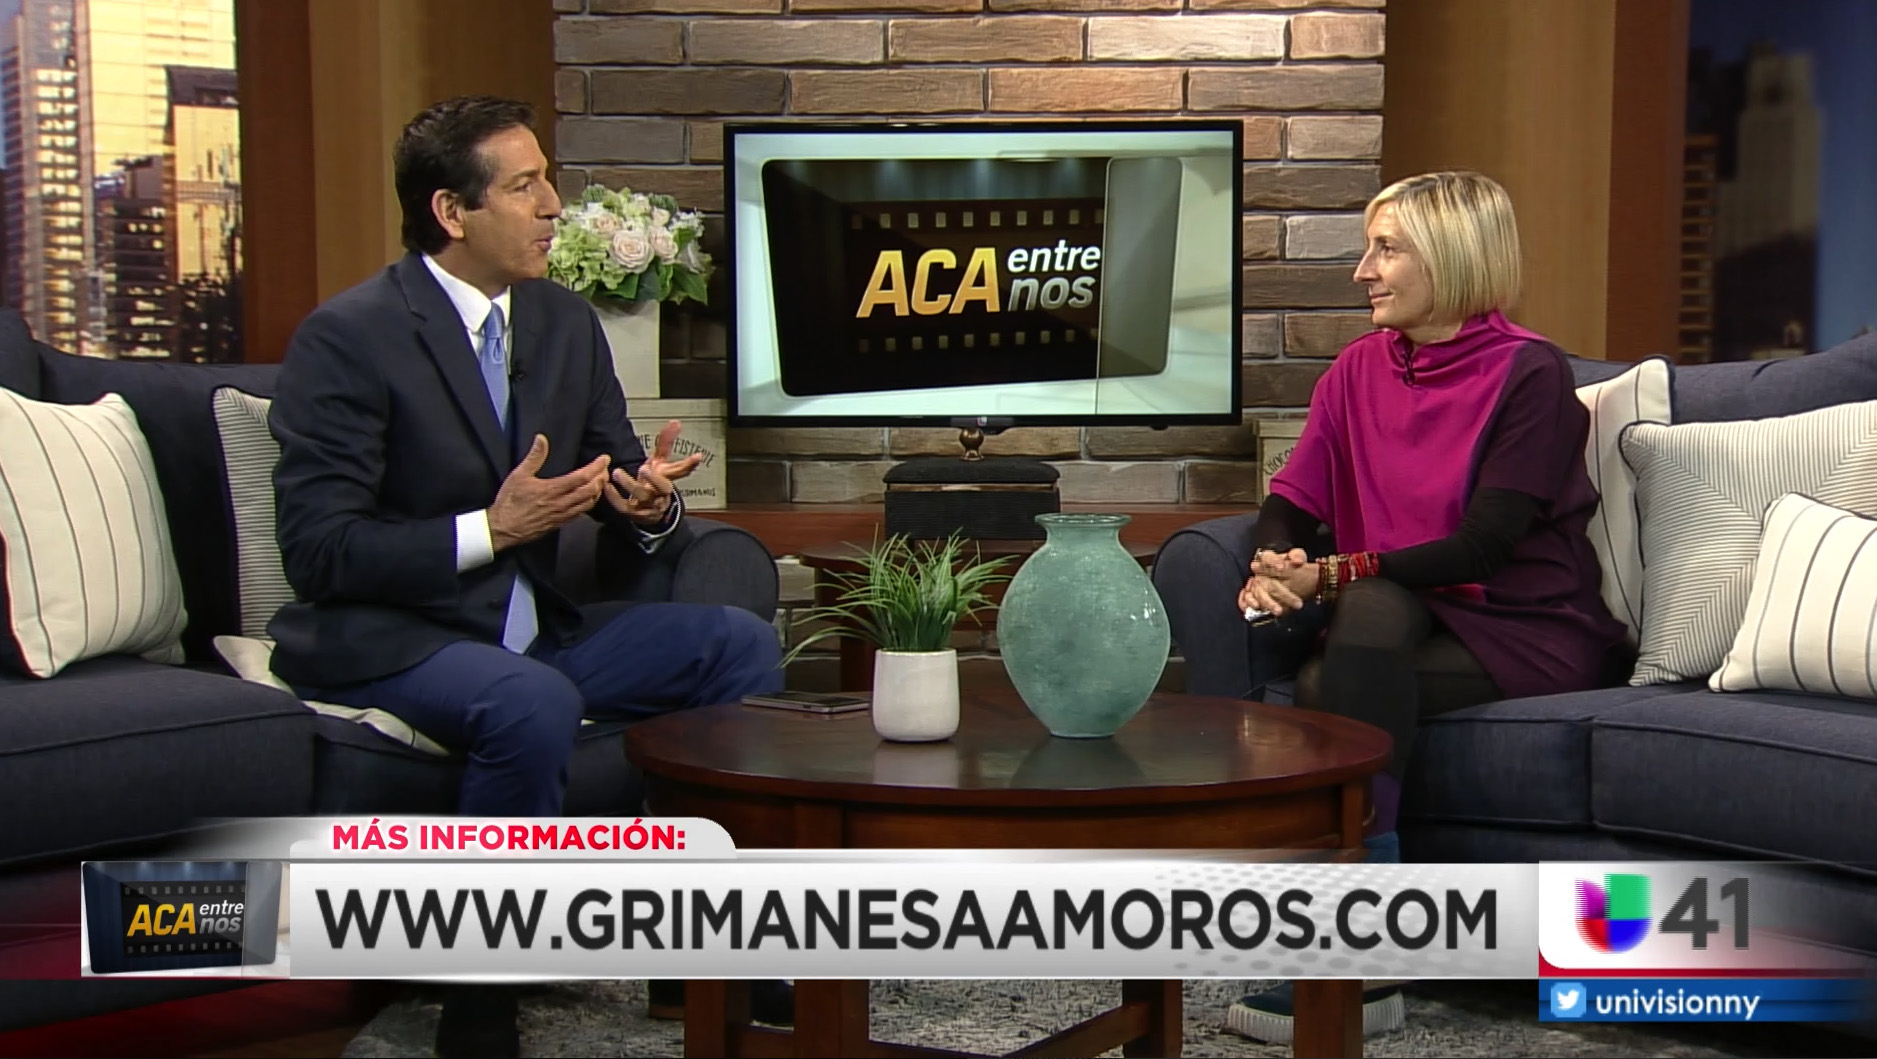 grimanesa amoros interview with Víctor Javier Solano as part of ACA Entre Nos